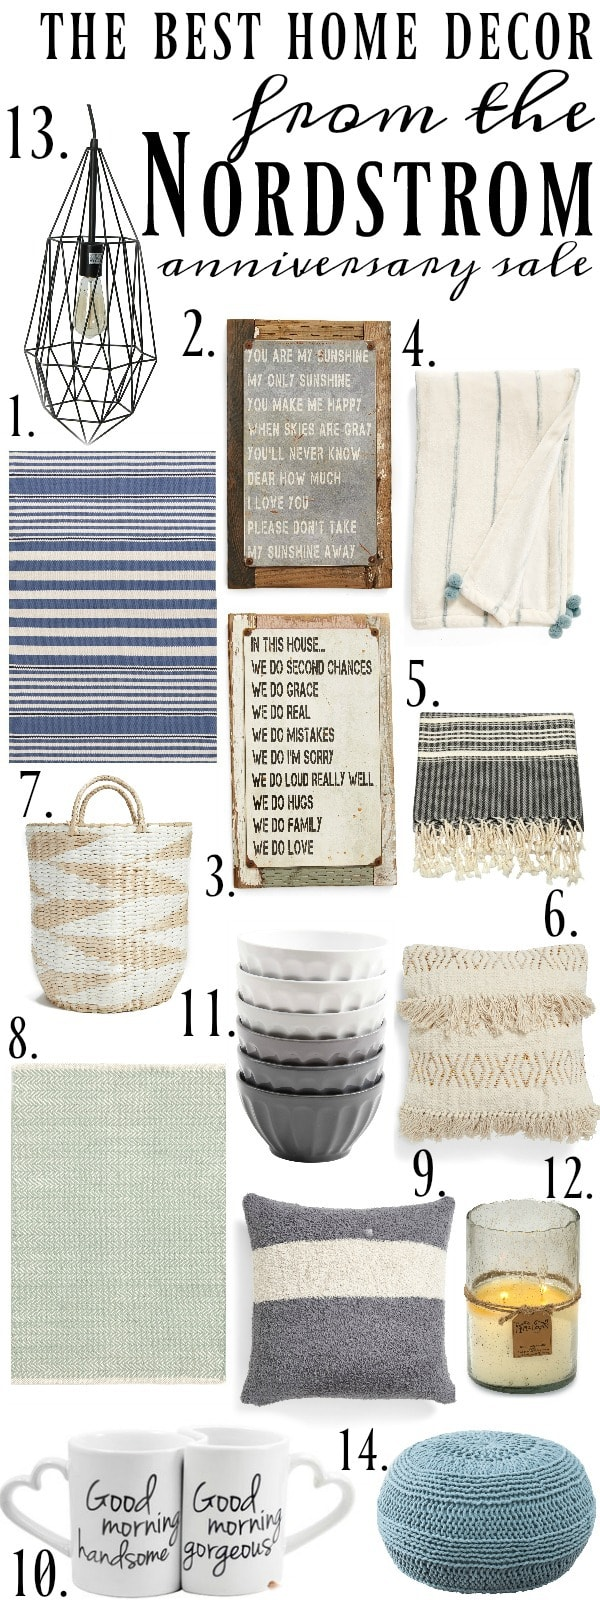 The Best Home decor from the Nordstrom Anniversary sale - Great farmhouse and cottage decor from nordstrom